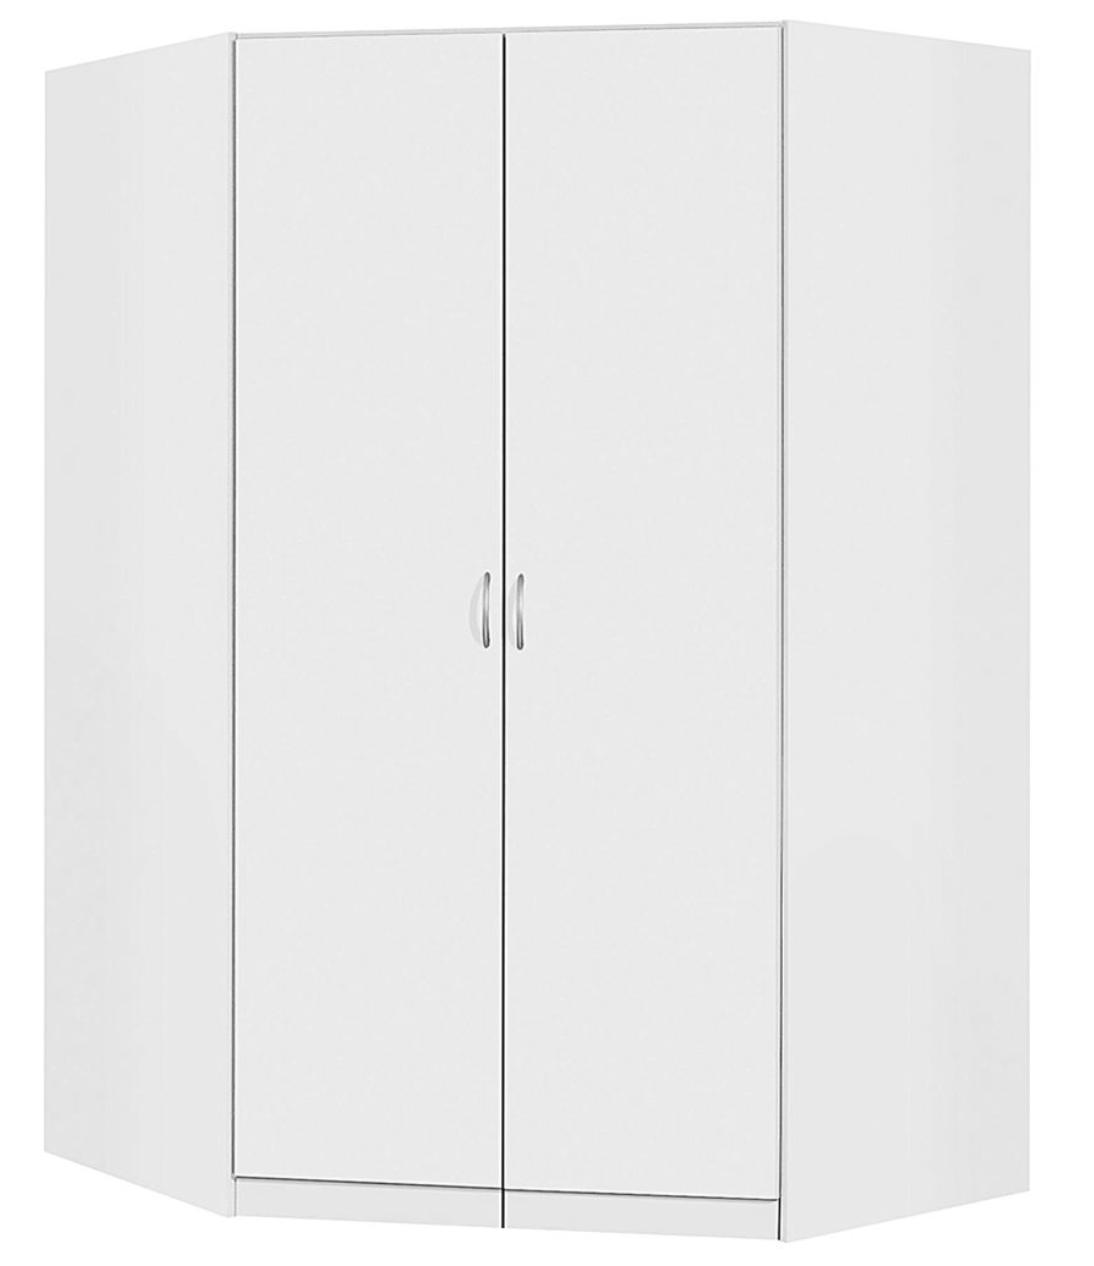 armoire d 39 angle blanche 2 portes battantes kaze. Black Bedroom Furniture Sets. Home Design Ideas